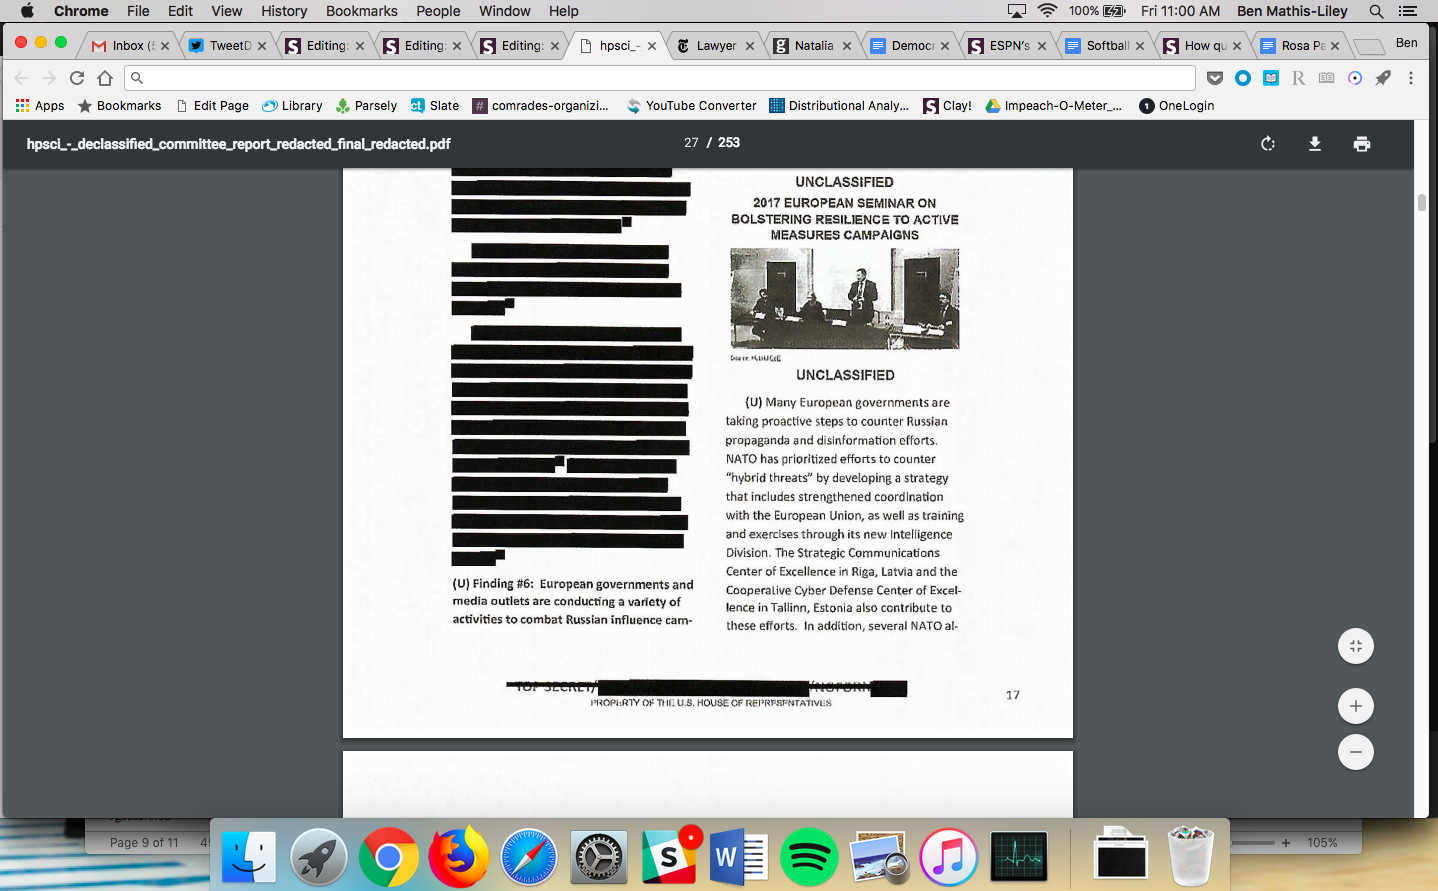 A page of the House Intel Committee's blurry Russia report.